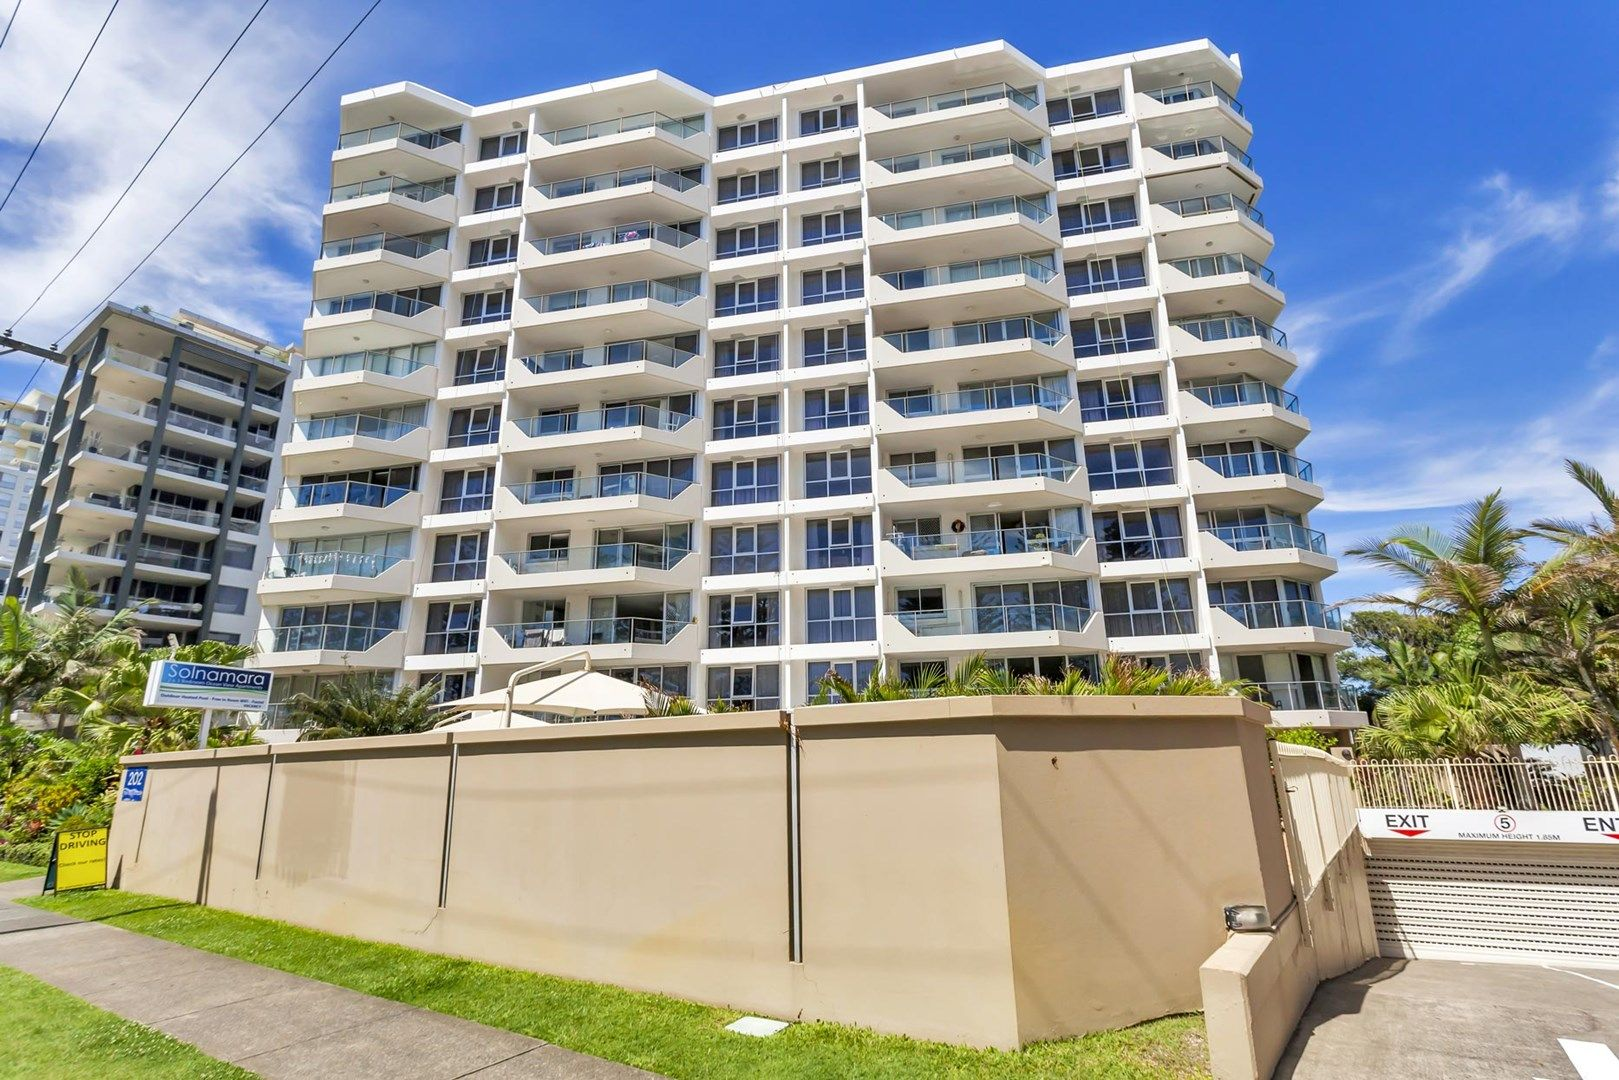 44/202 The Esplanade, Burleigh Heads QLD 4220, Image 9